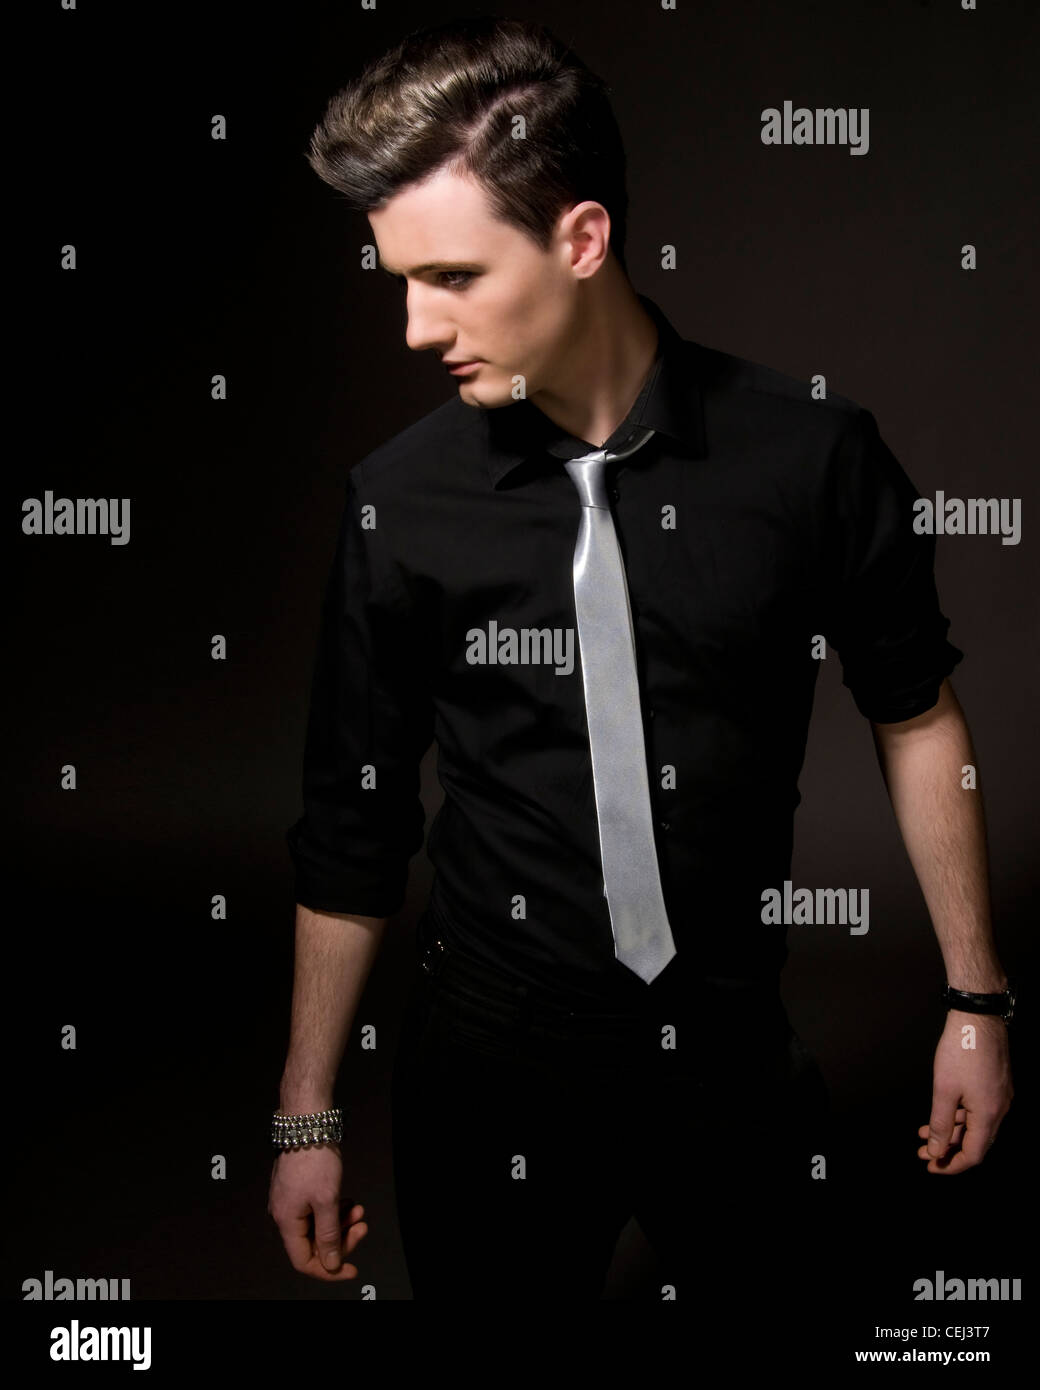 Male model in studio black shirt and silver tie stock for Black shirt and black tie